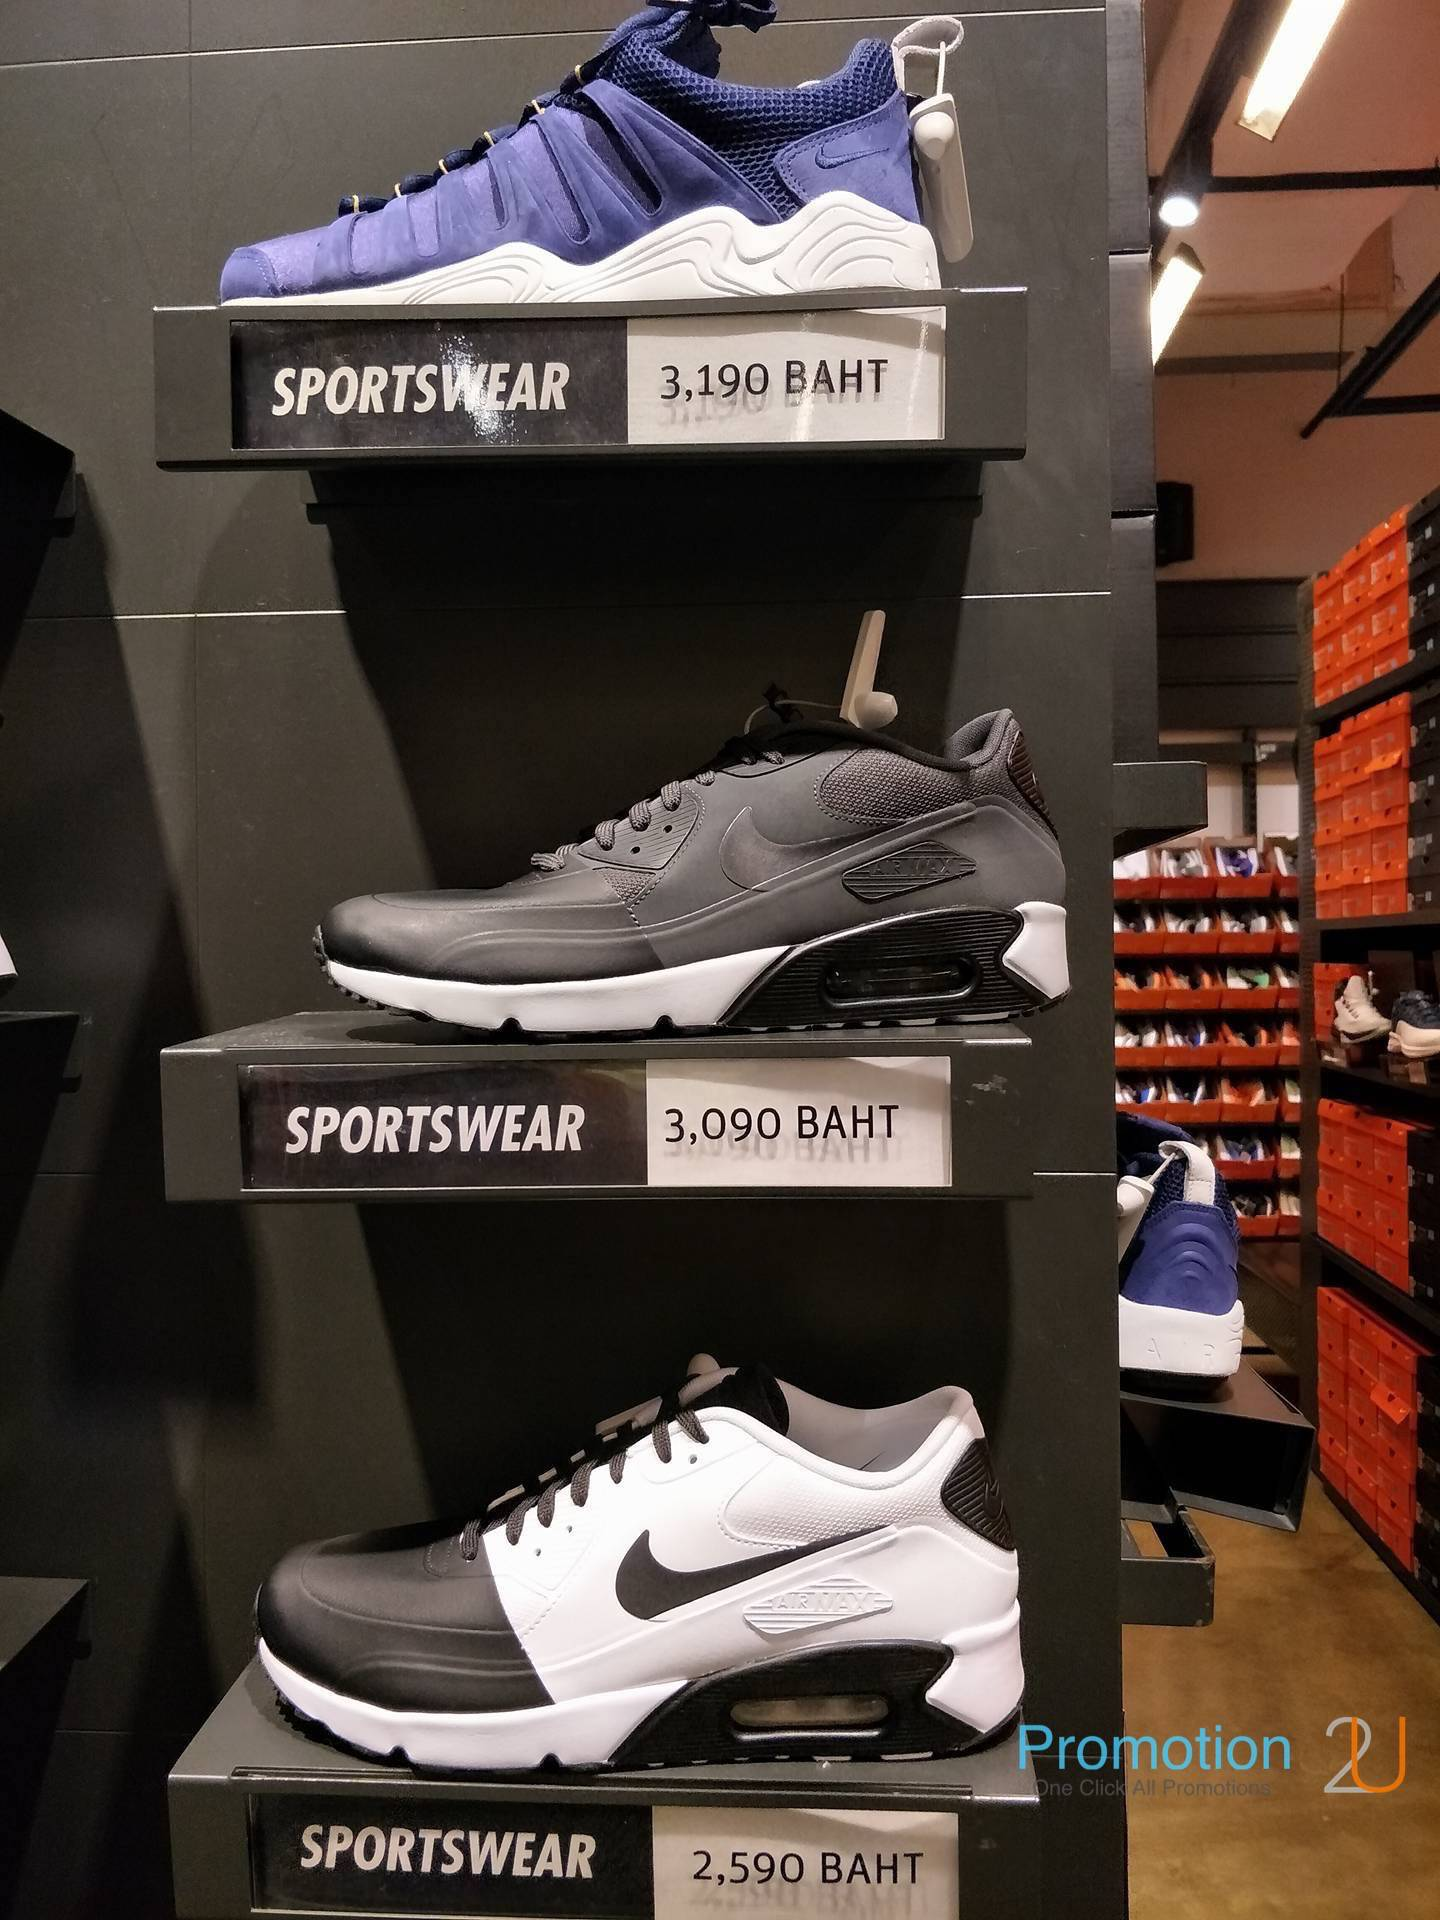 nike promotion tools Promo codes, coupons, and deals for october, 2018 we add thousands of promotions each day for over 25,000 retailers and brands join millions of online shoppers who regularly save on their purchases using promocodewatchcom.